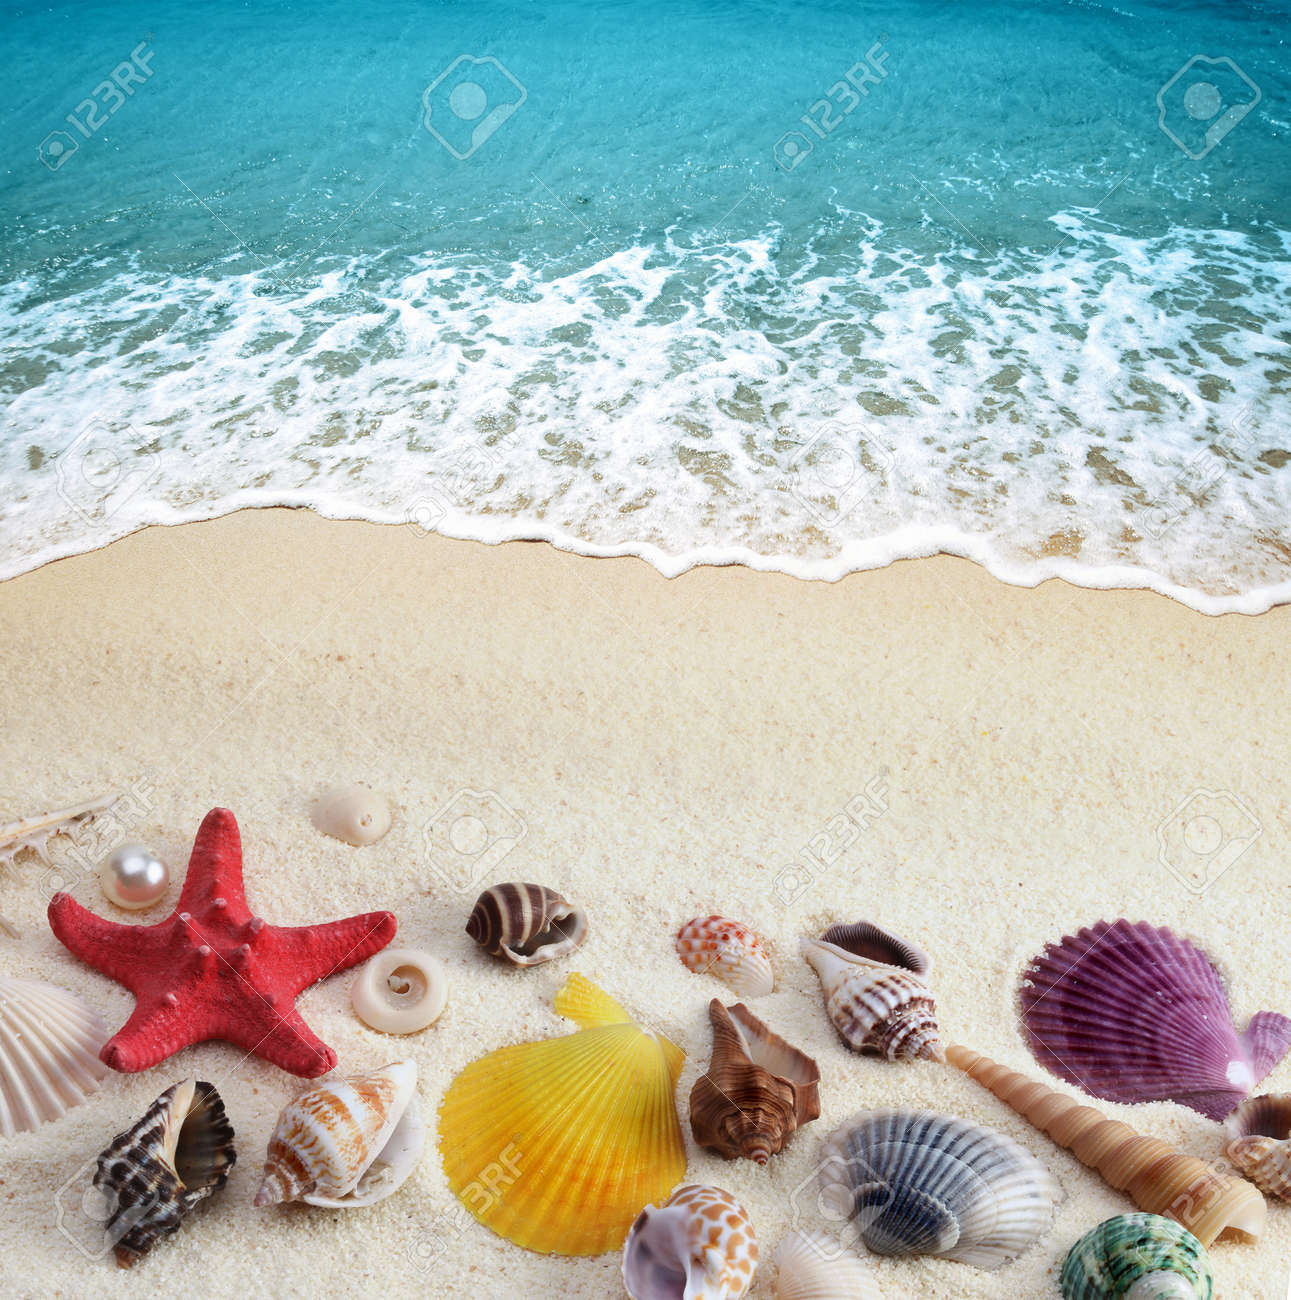 Sea Shells On Sand Beach Stock Photo Picture And Royalty Free